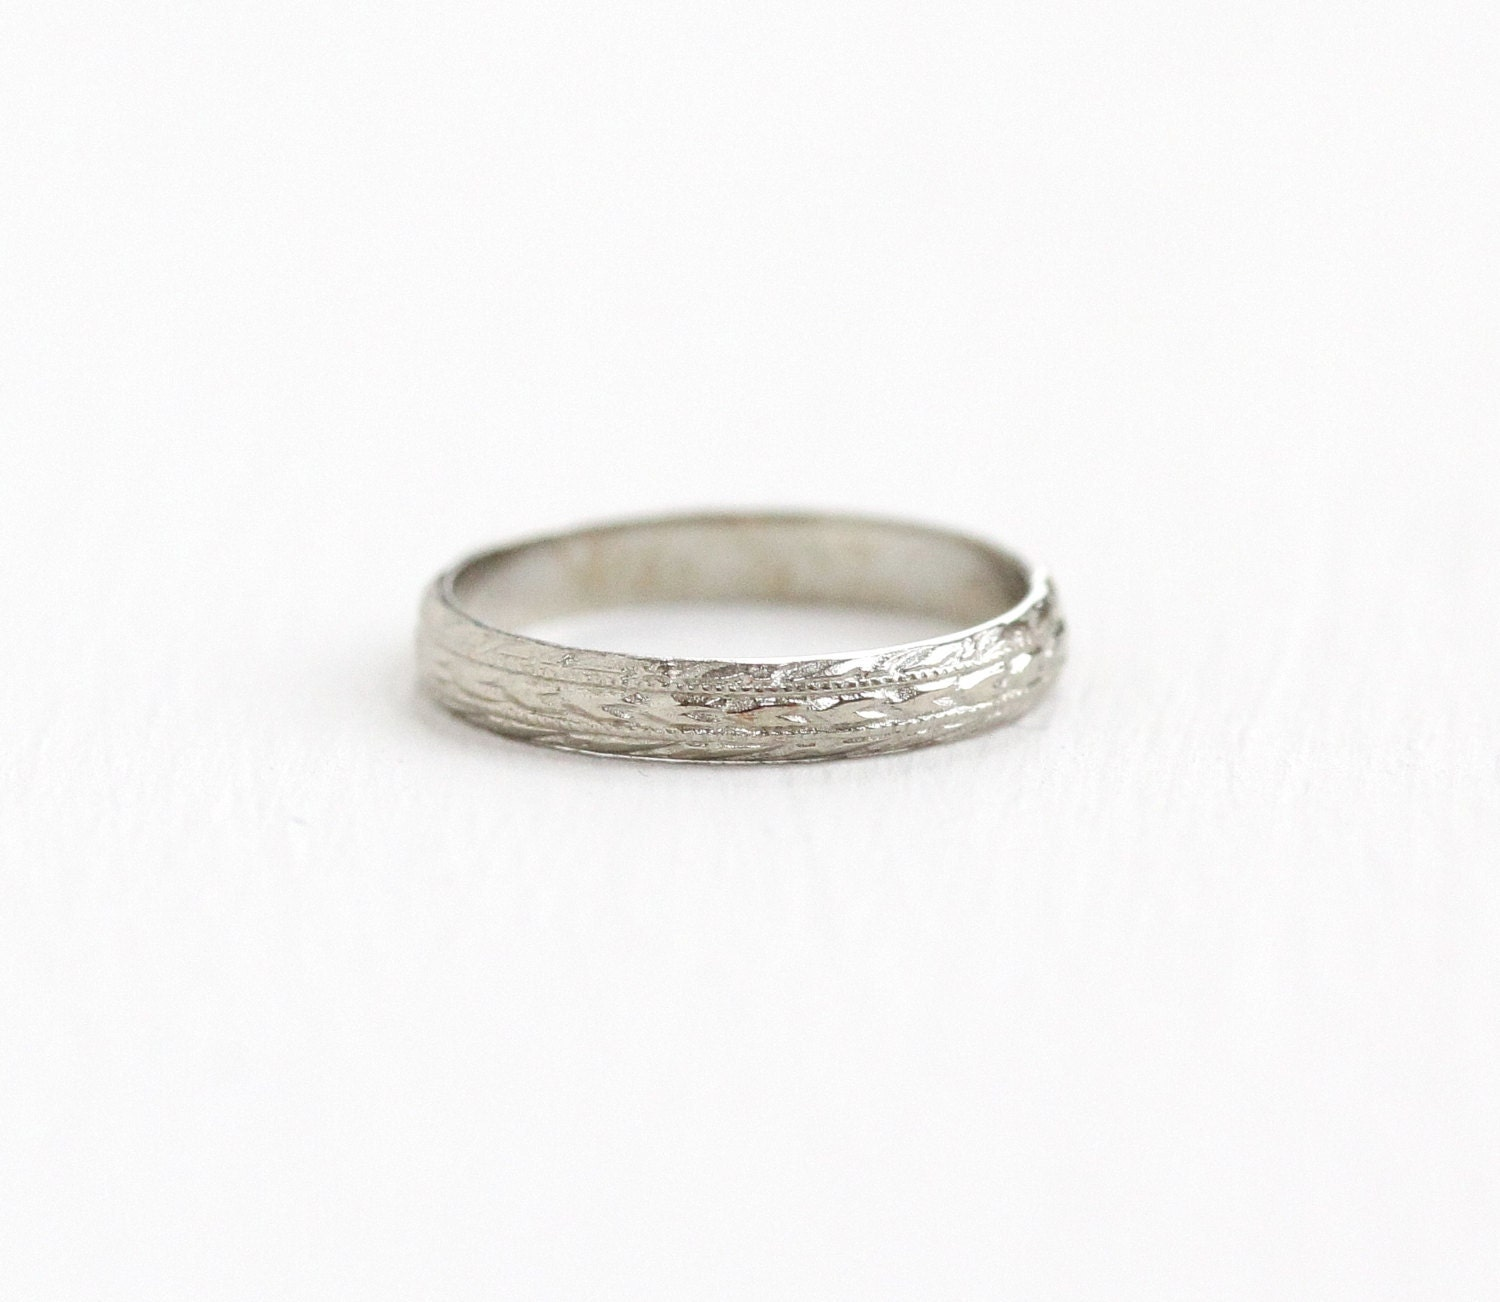 antique 14k white gold baby ring vintage 1920s by